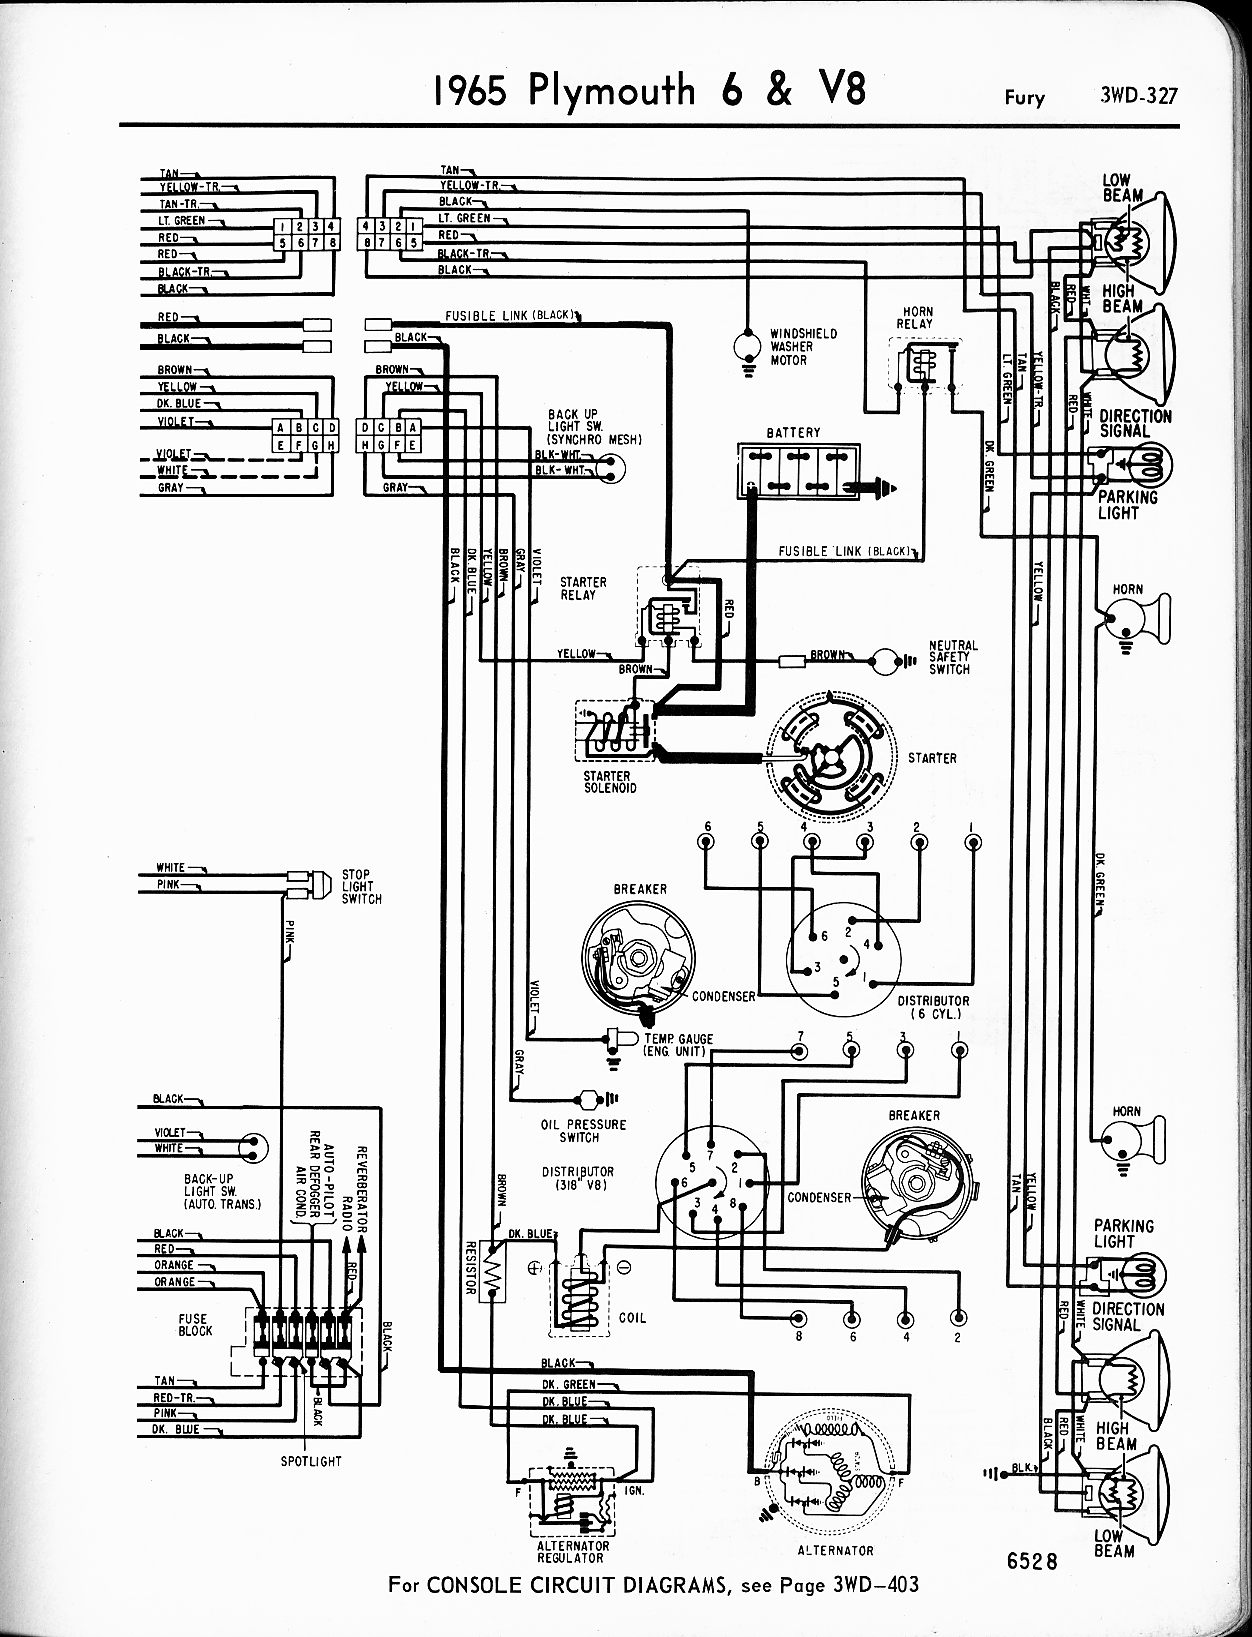 Chrysler Lebaron Wiring Diagram | Online Wiring Diagram